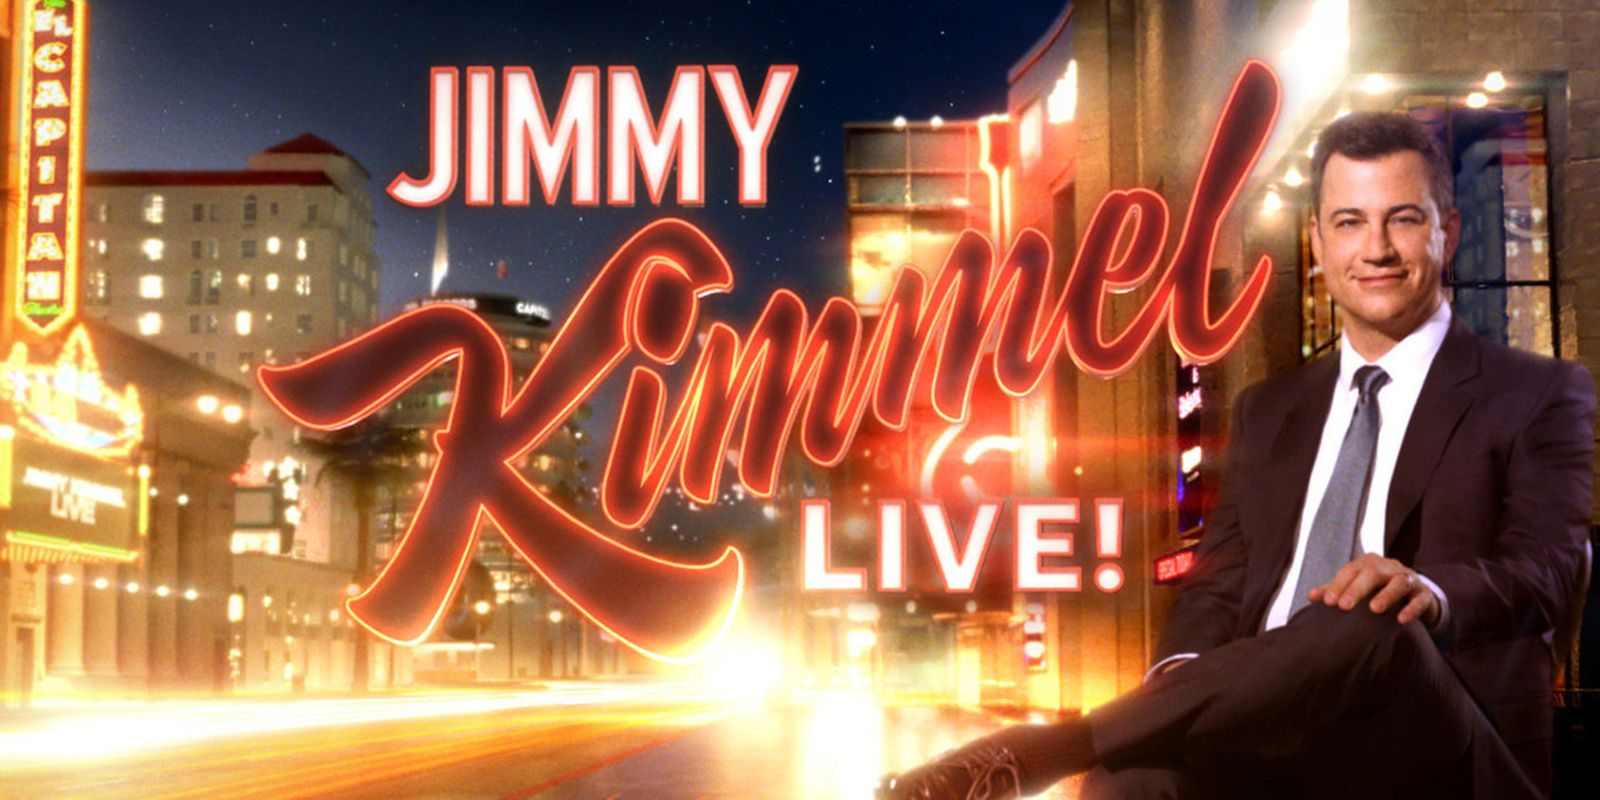 jimmy-kimmel-live-crop-rev-1.jpg